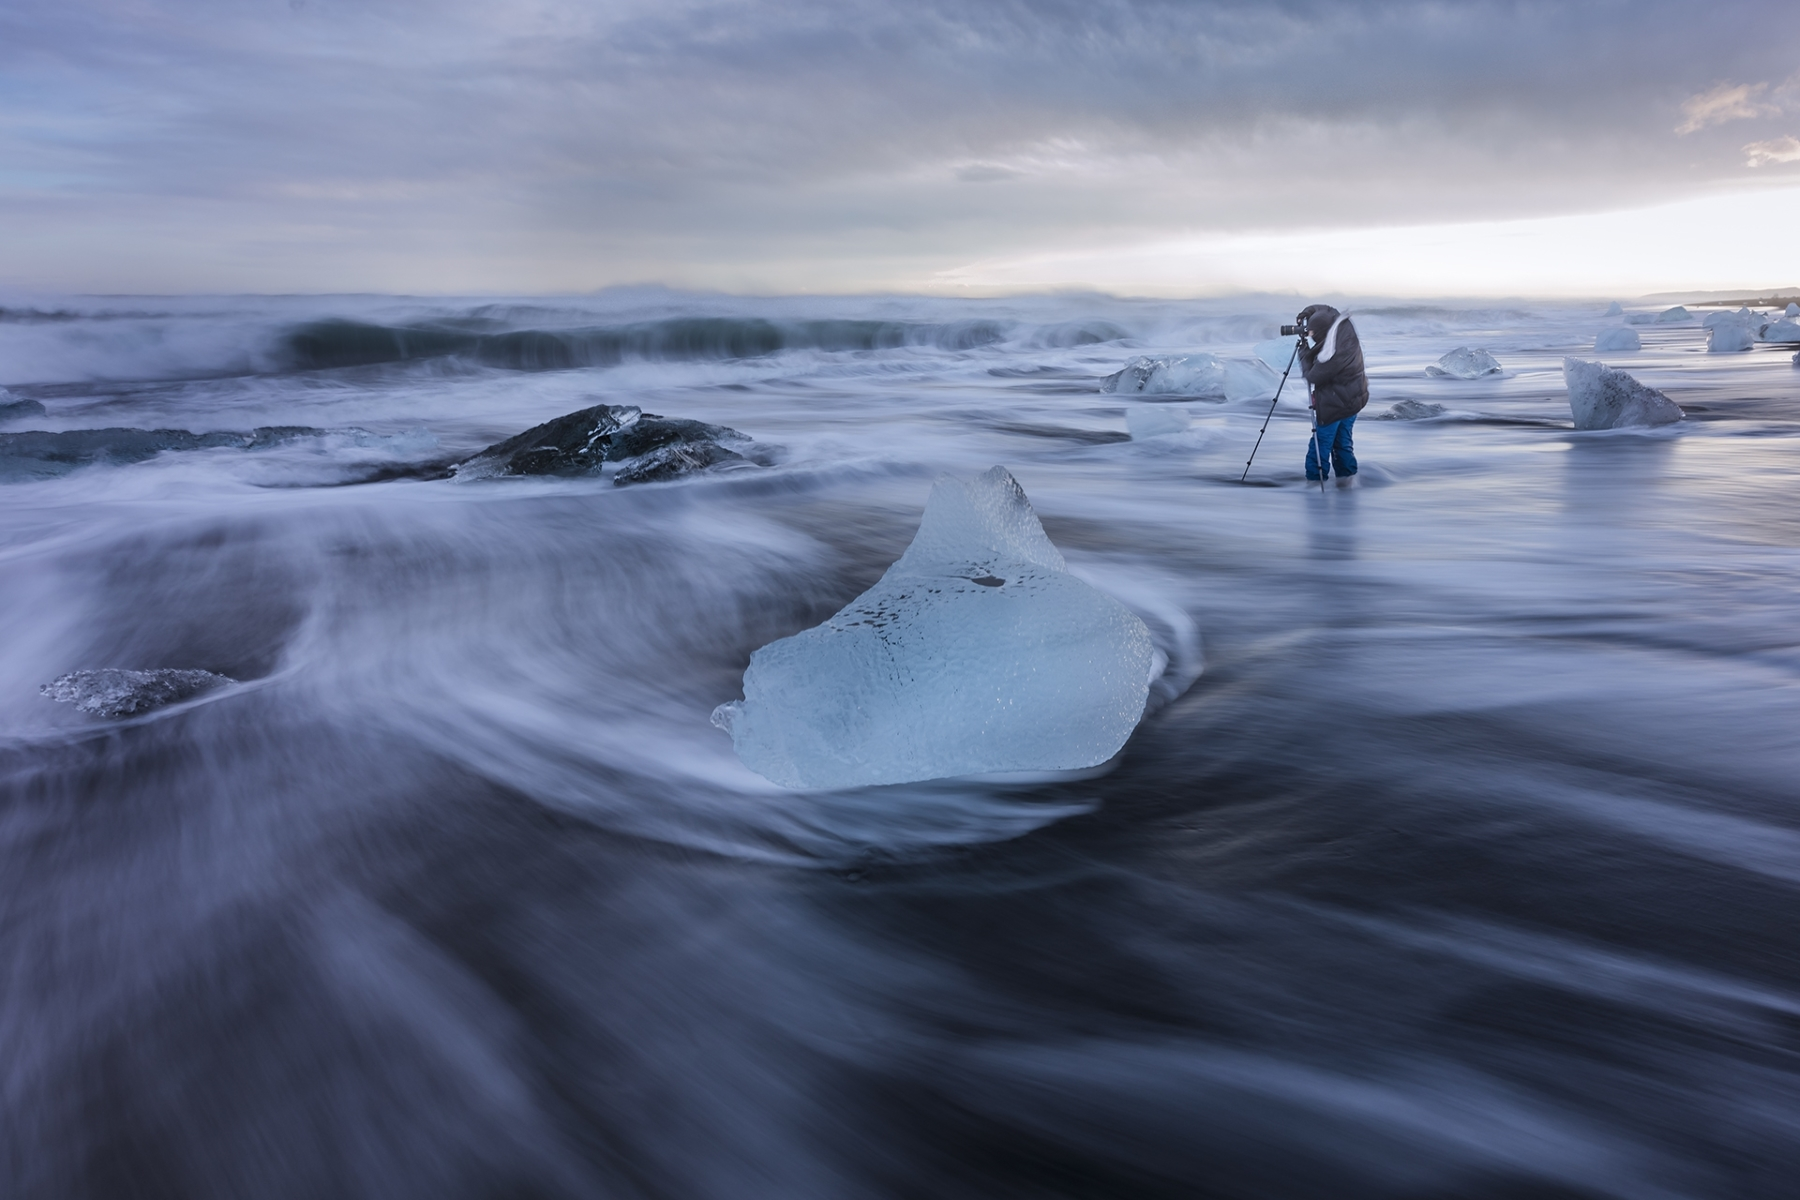 Diamond-Beach-Photography-Iceland-TA-1-Place-by-Louis-Cheng-AL